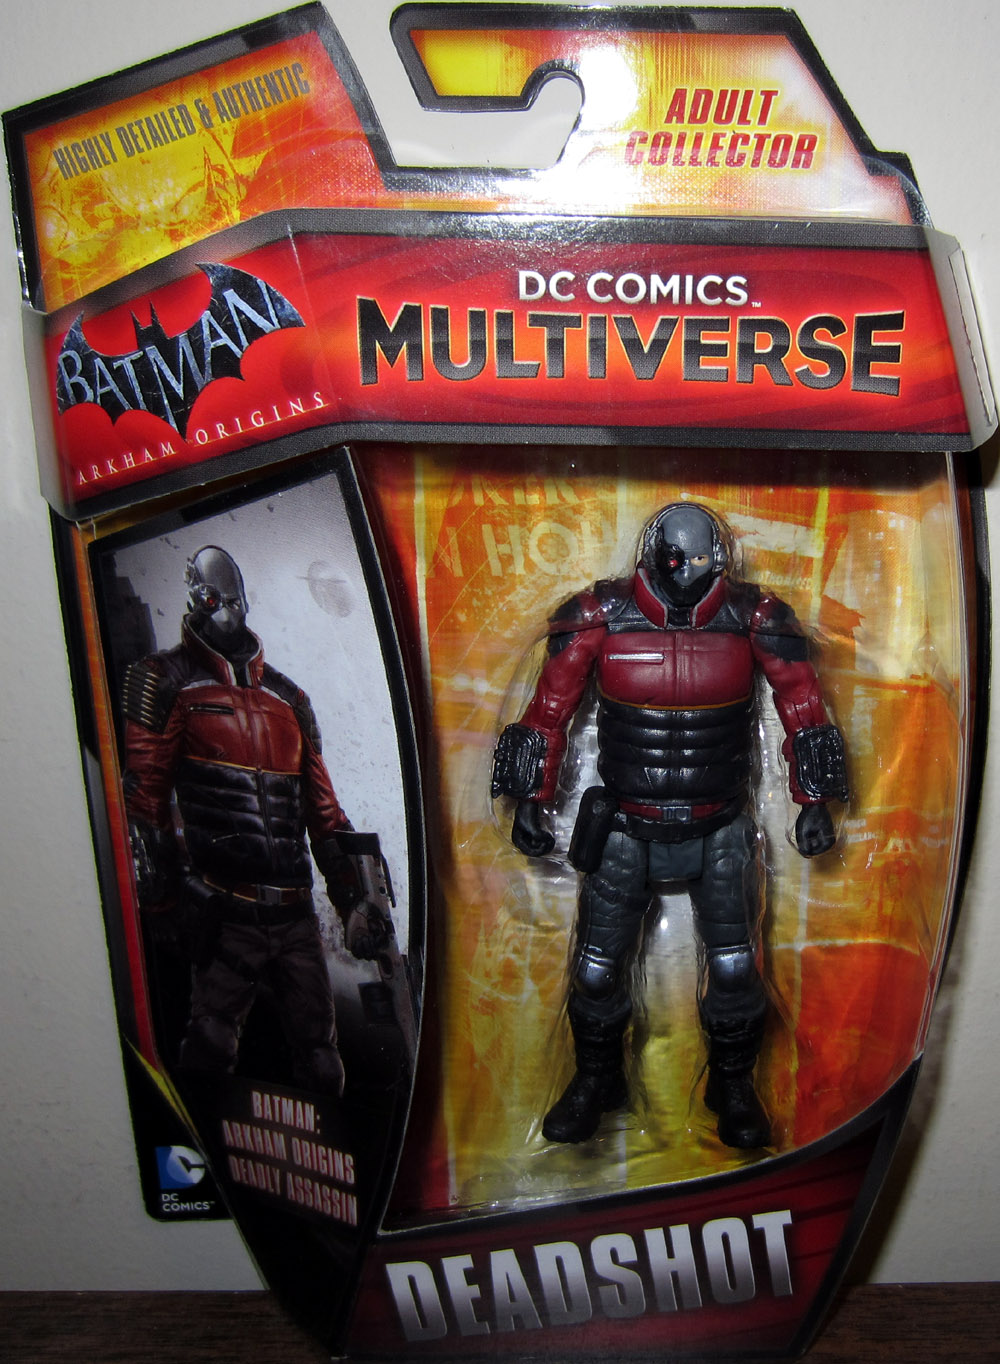 Deadshot (DC Comics Multiverse)